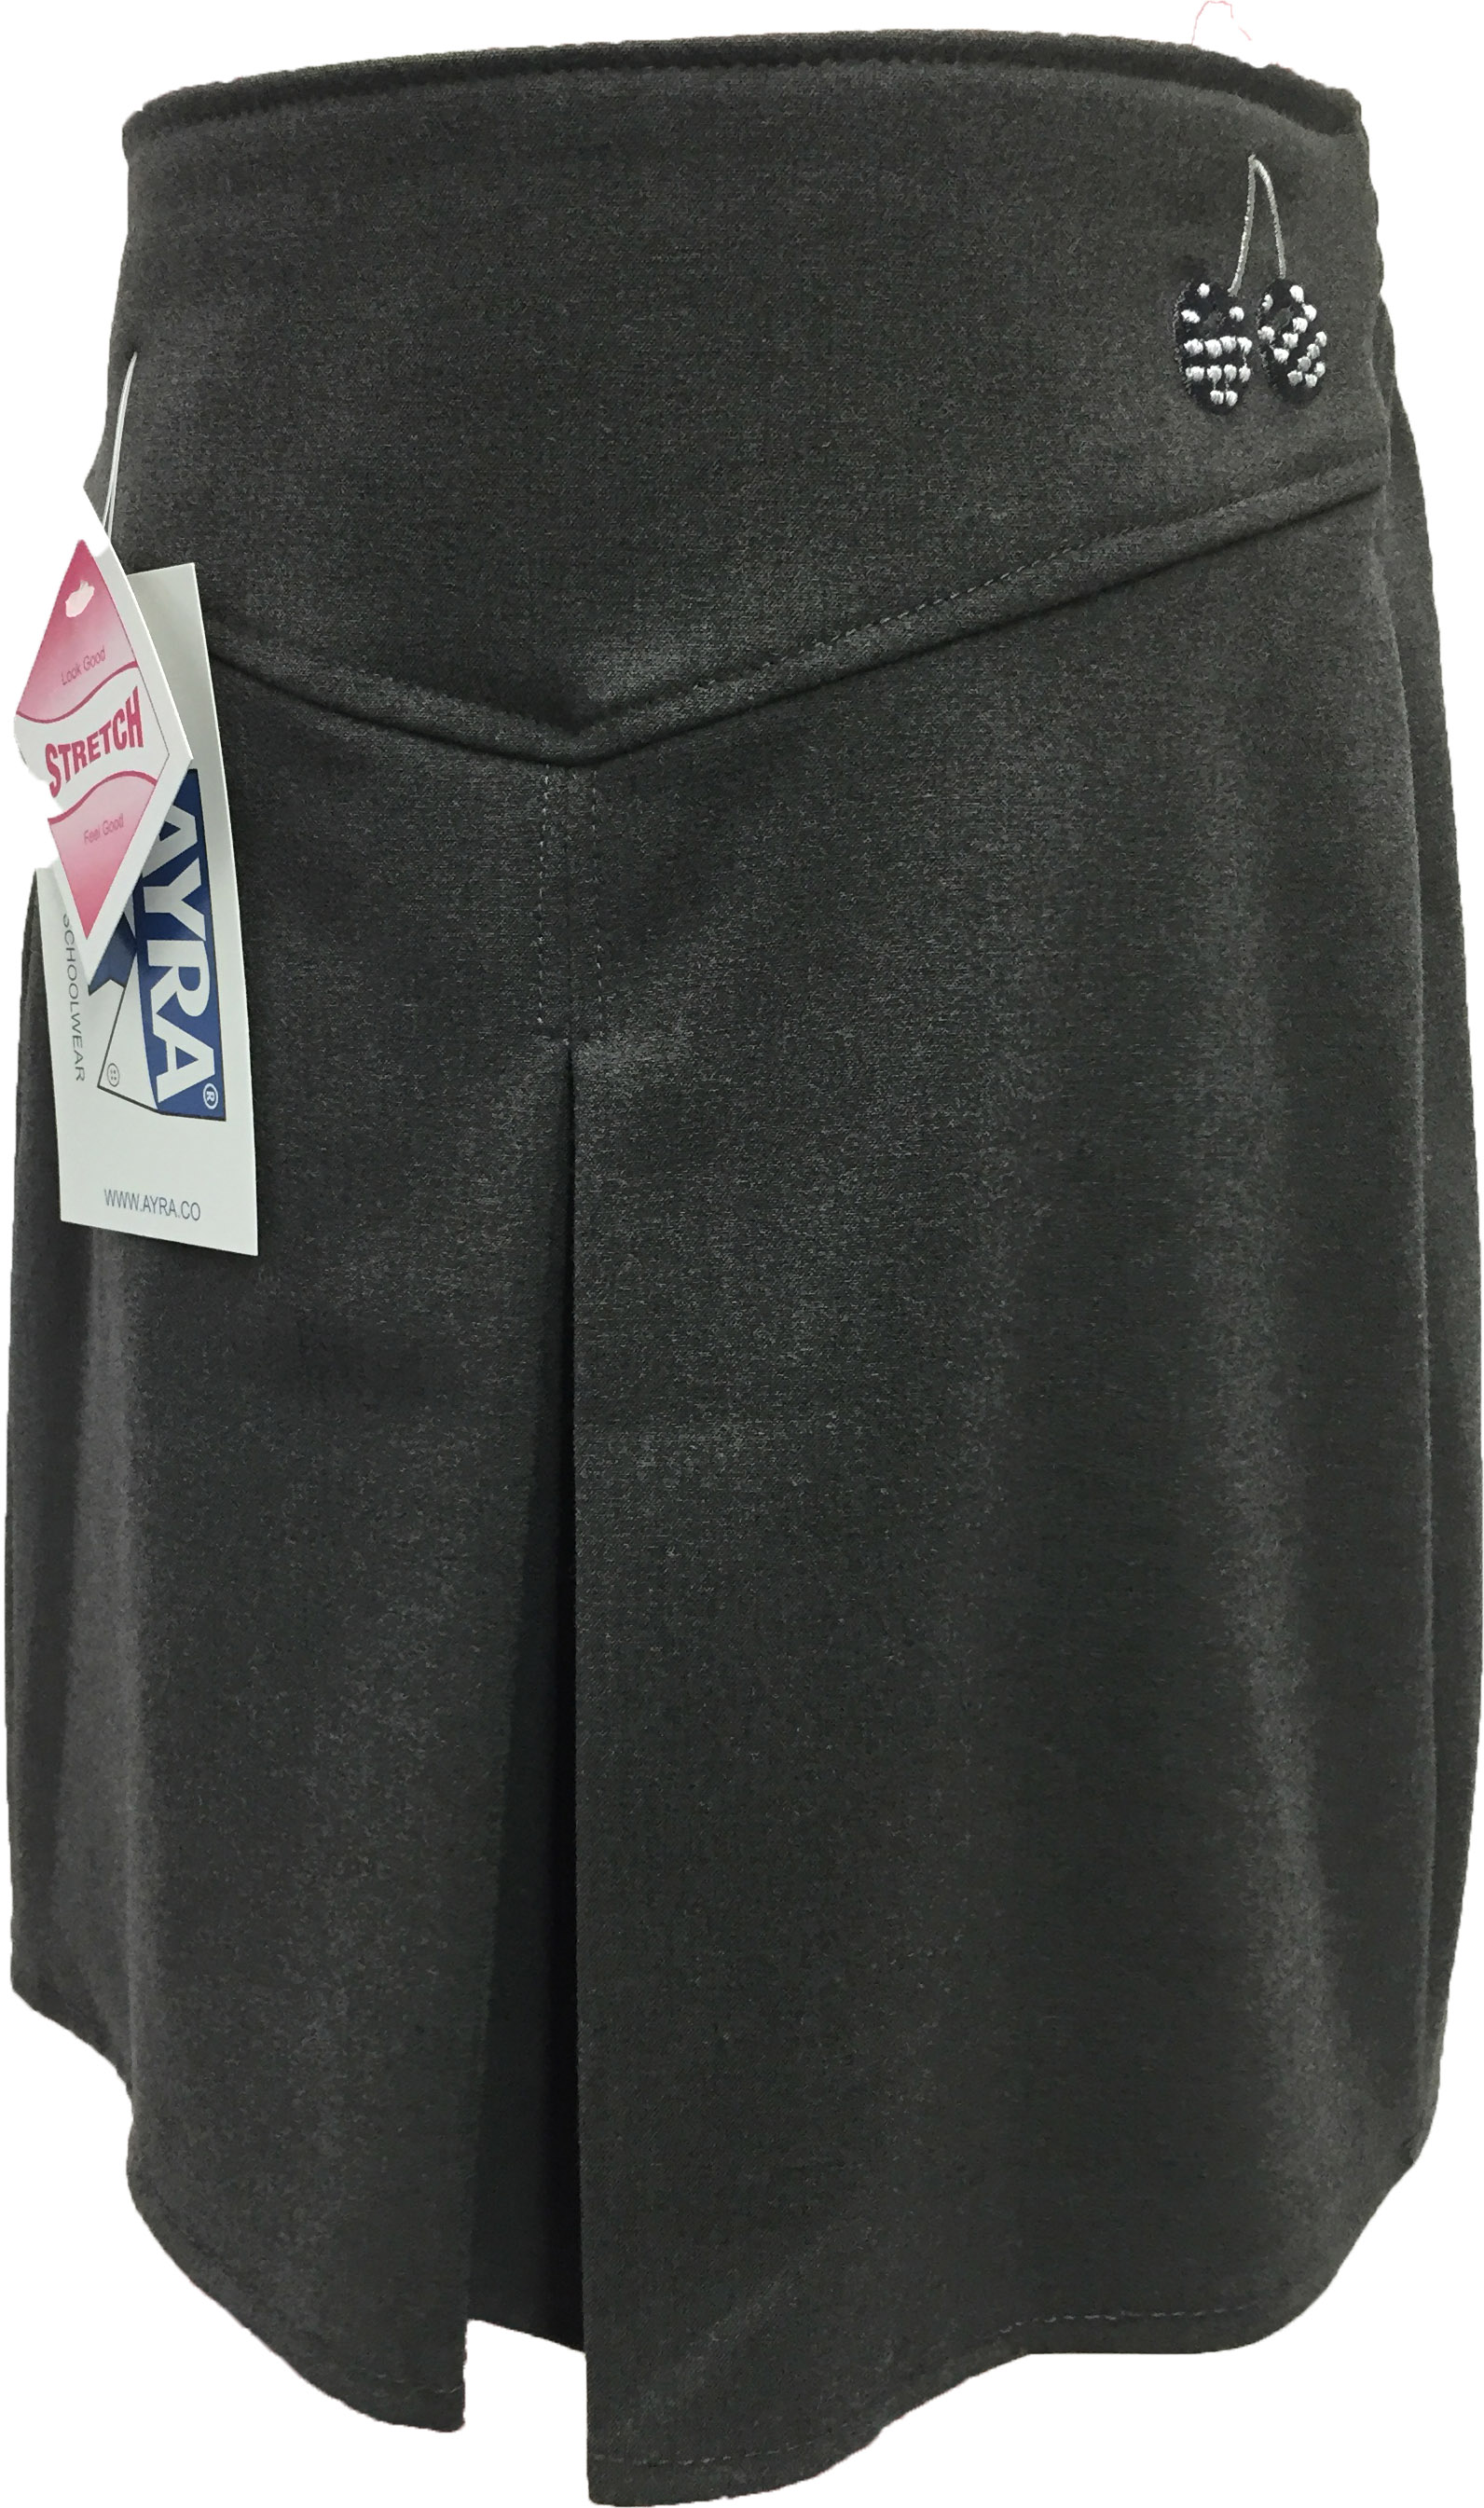 ayra-cherry-school-skirt-grey.jpg